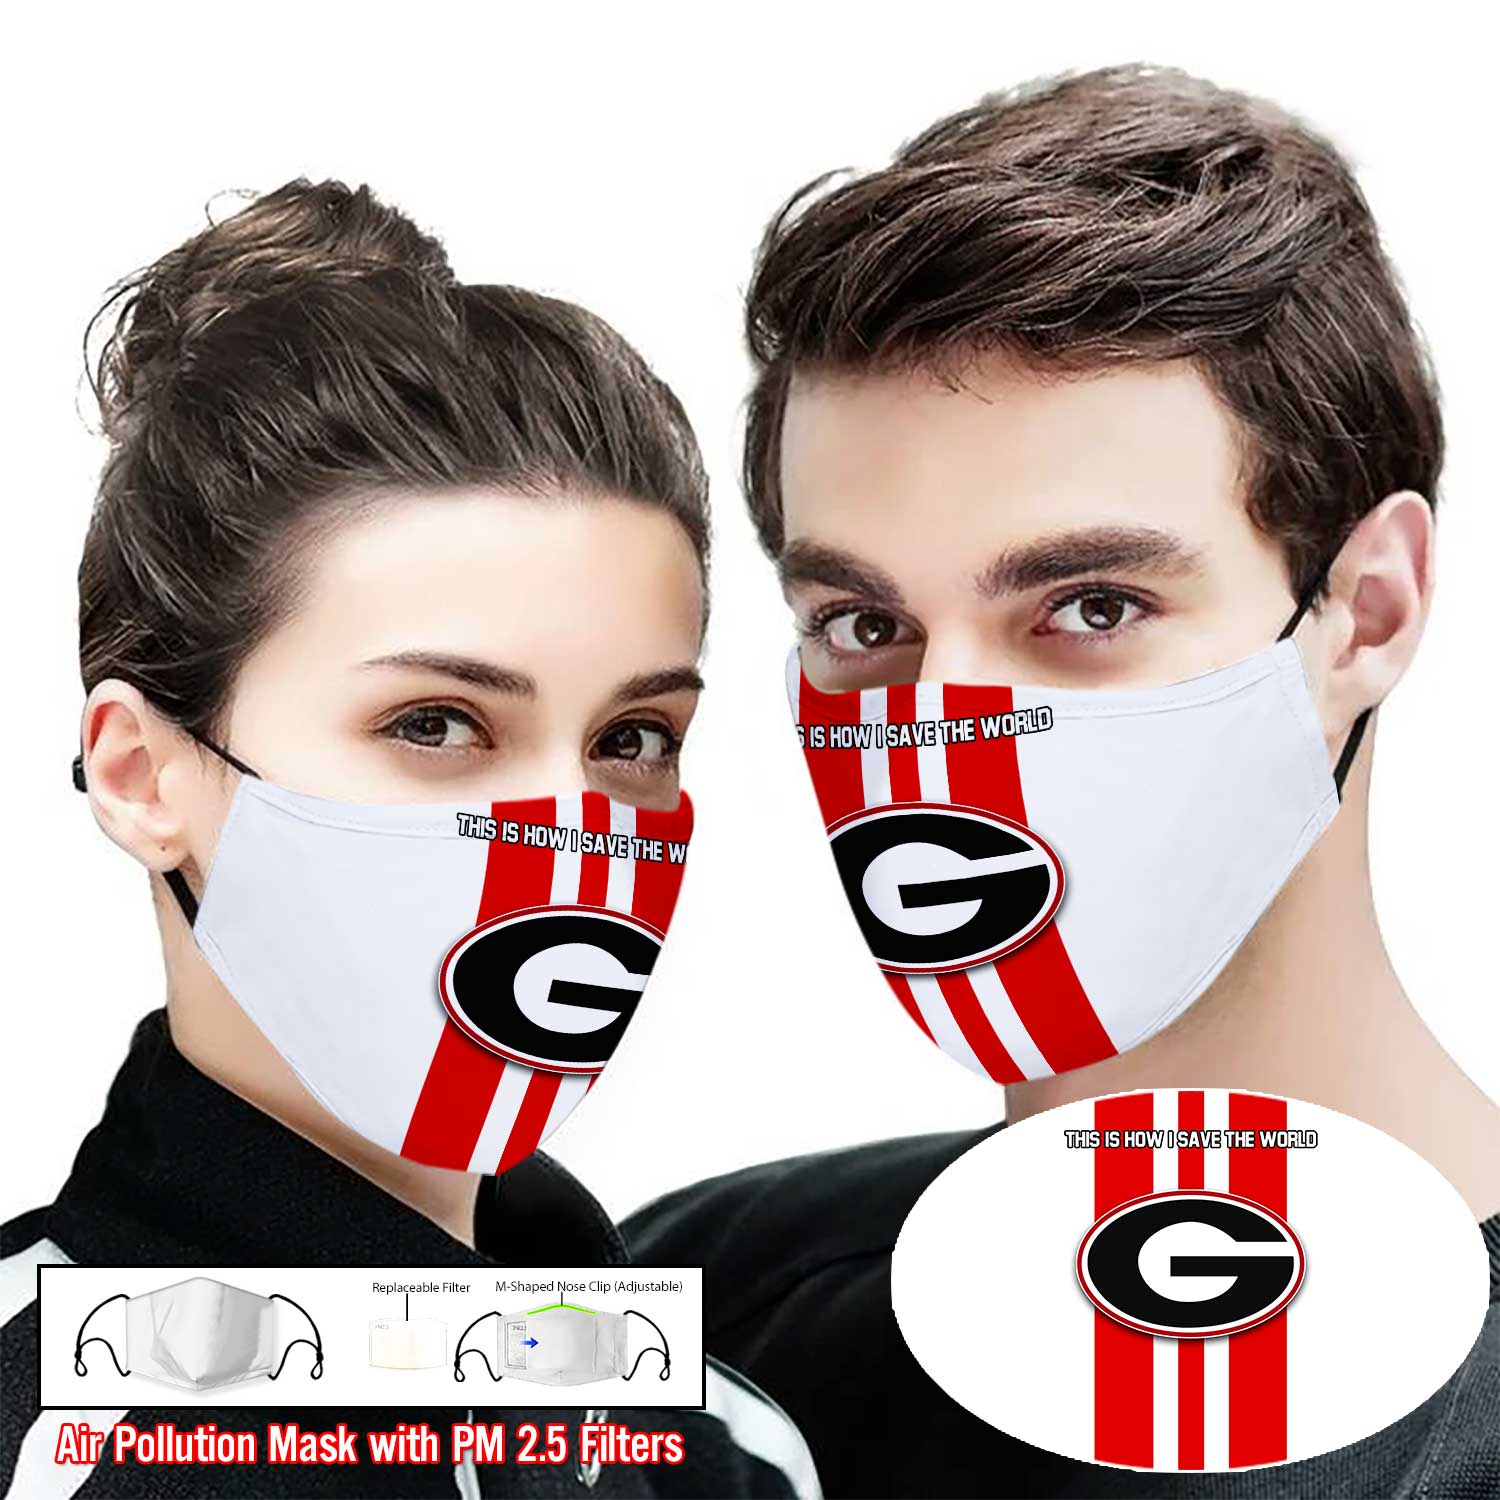 Georgia bulldogs football this is how i save the world face mask 2